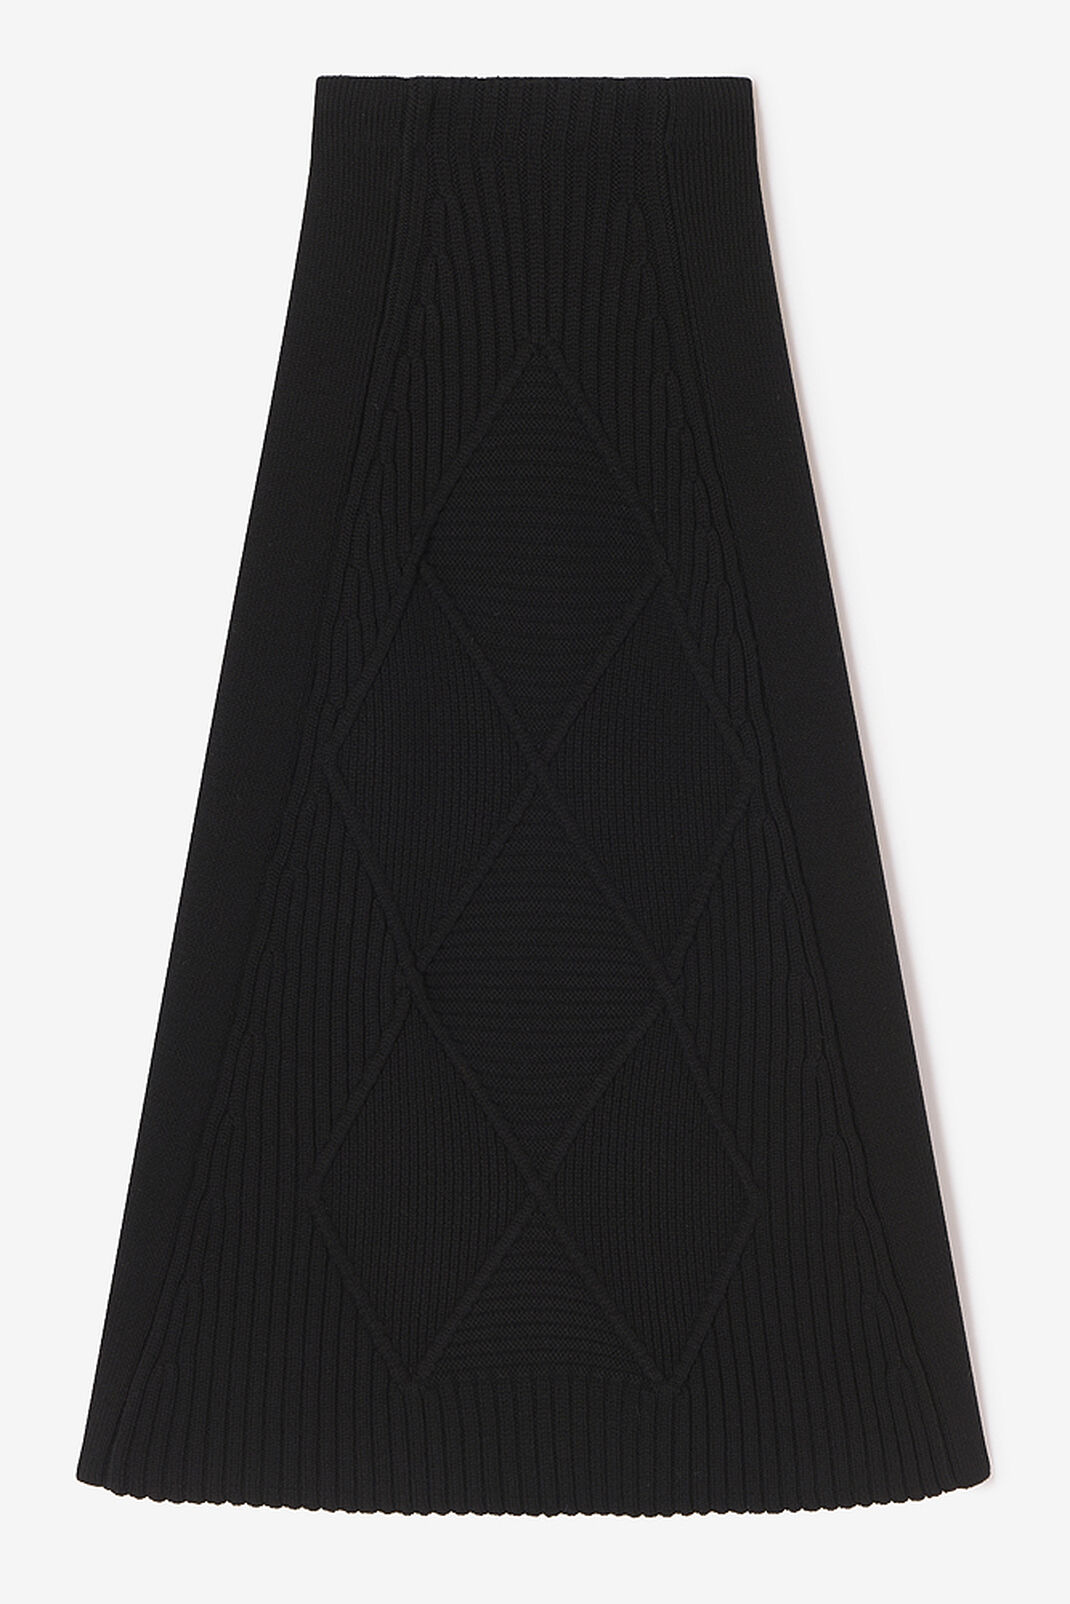 BLACK Knitted 'Argyll' midi skirt for women KENZO